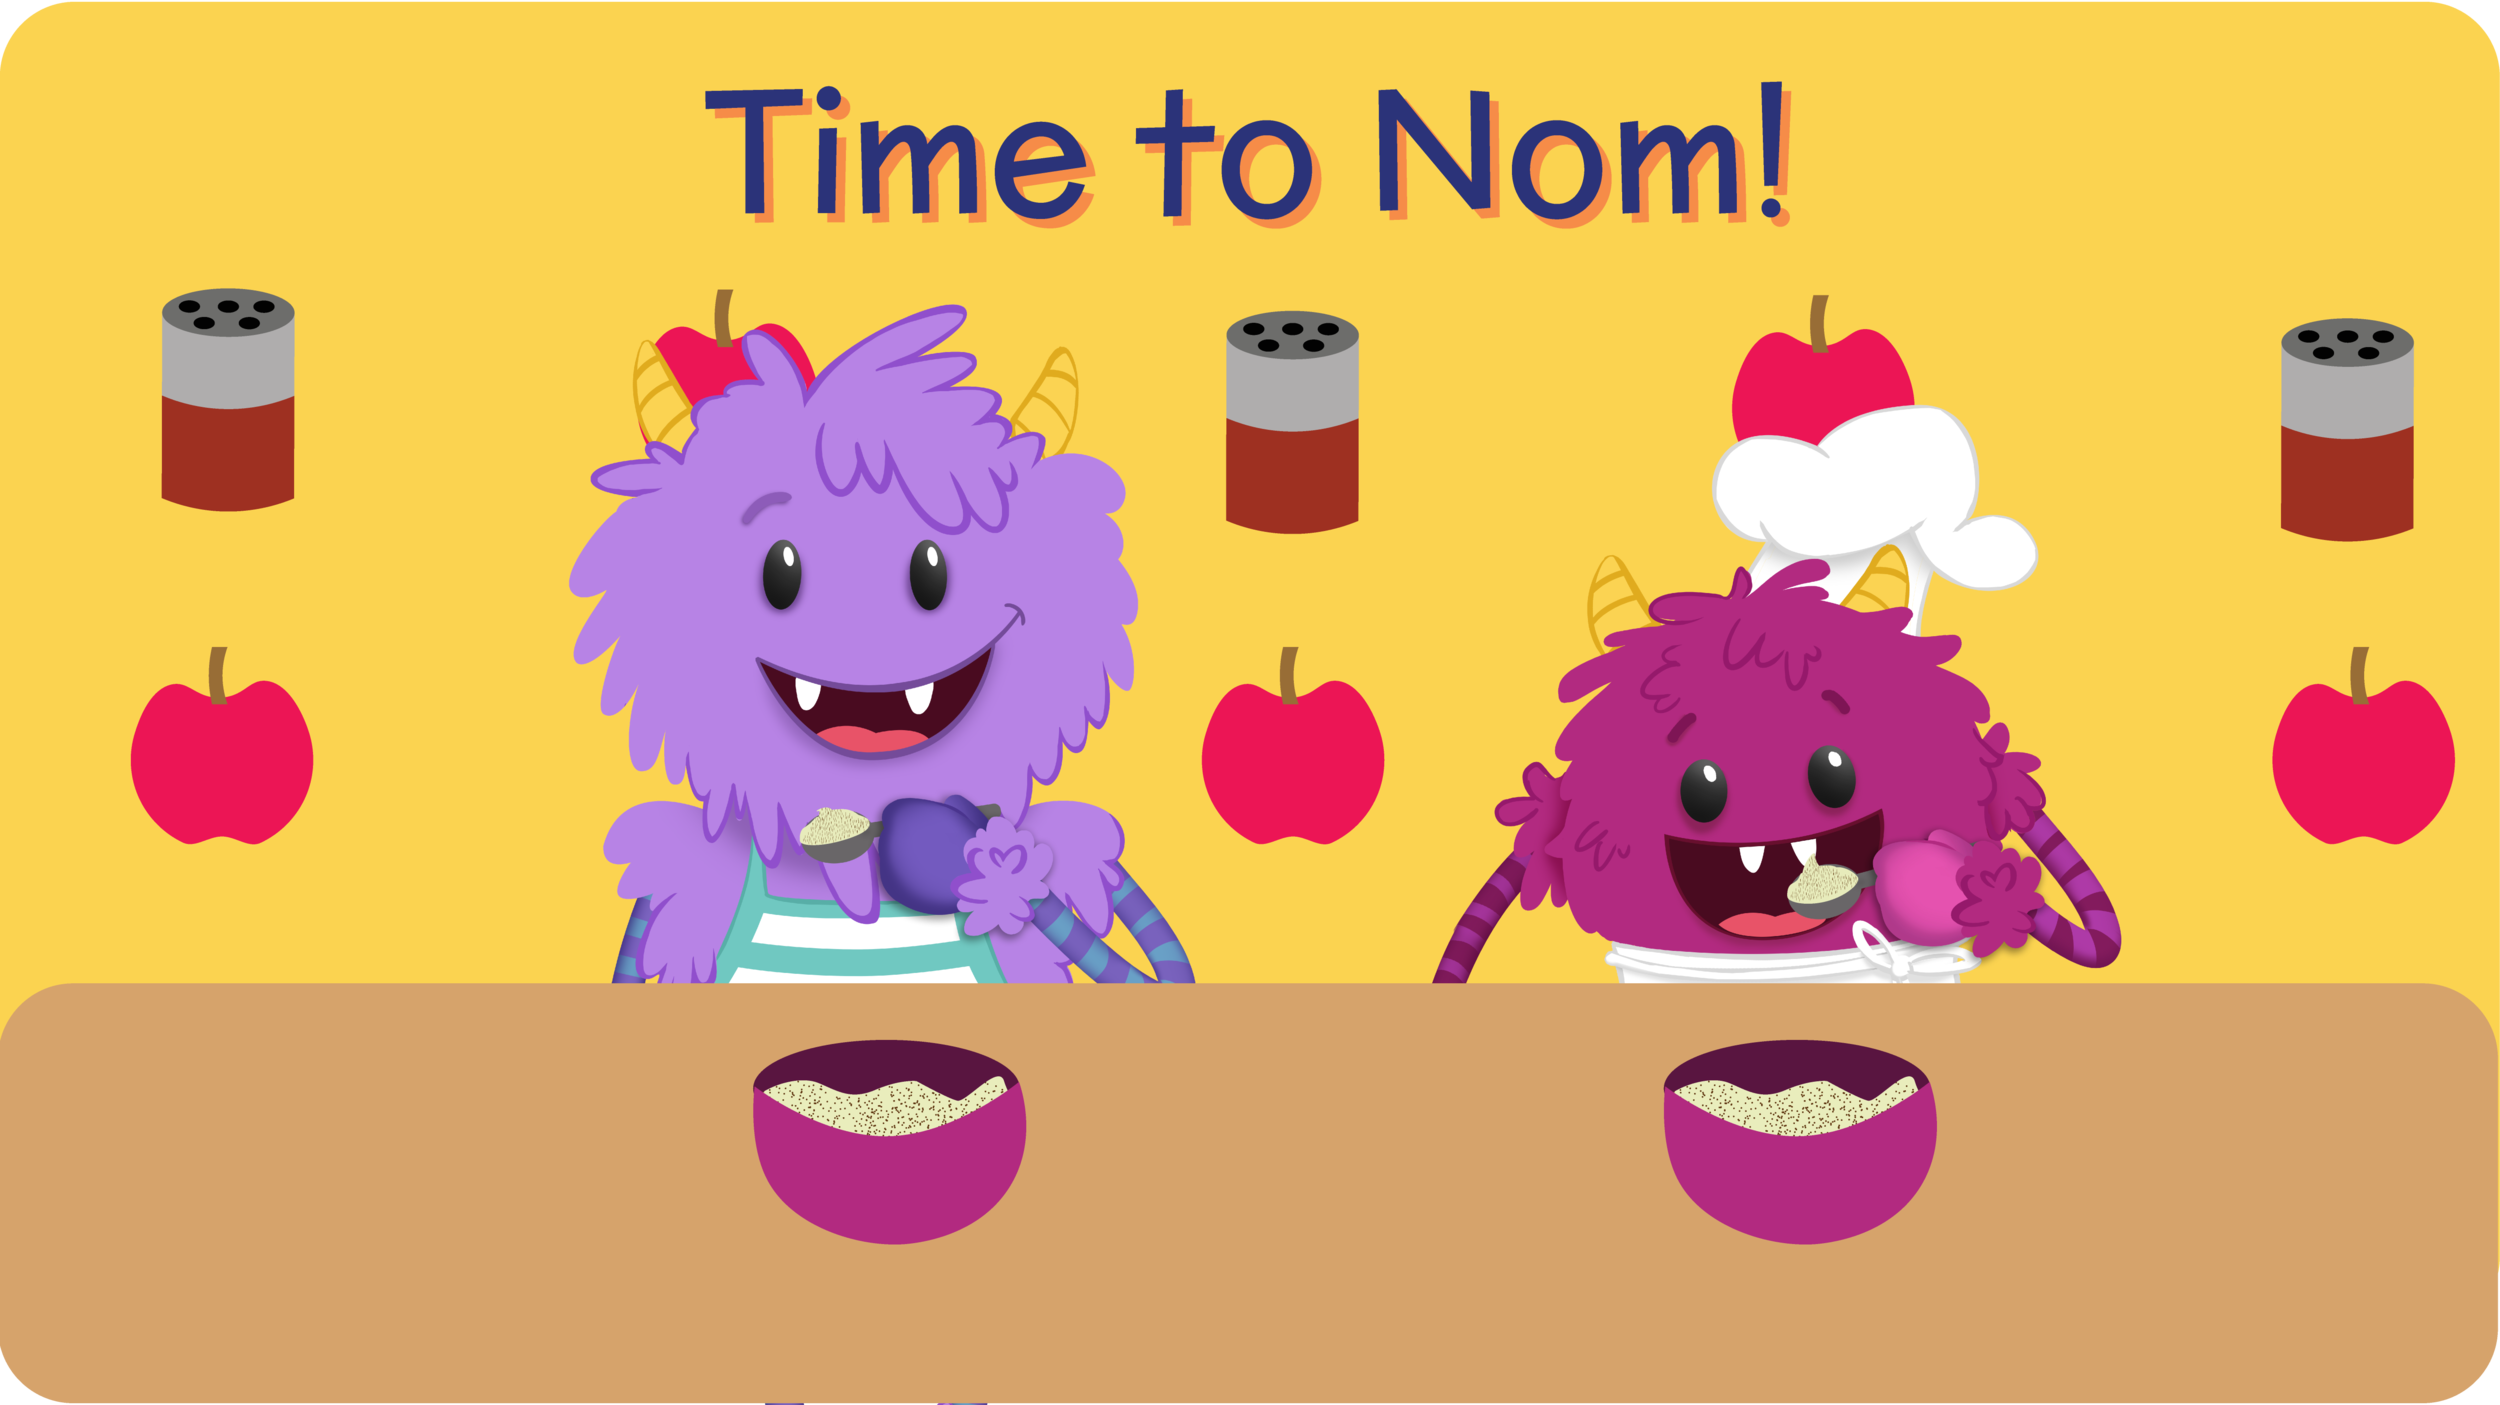 21_AppleSauce_time to noms-01.png